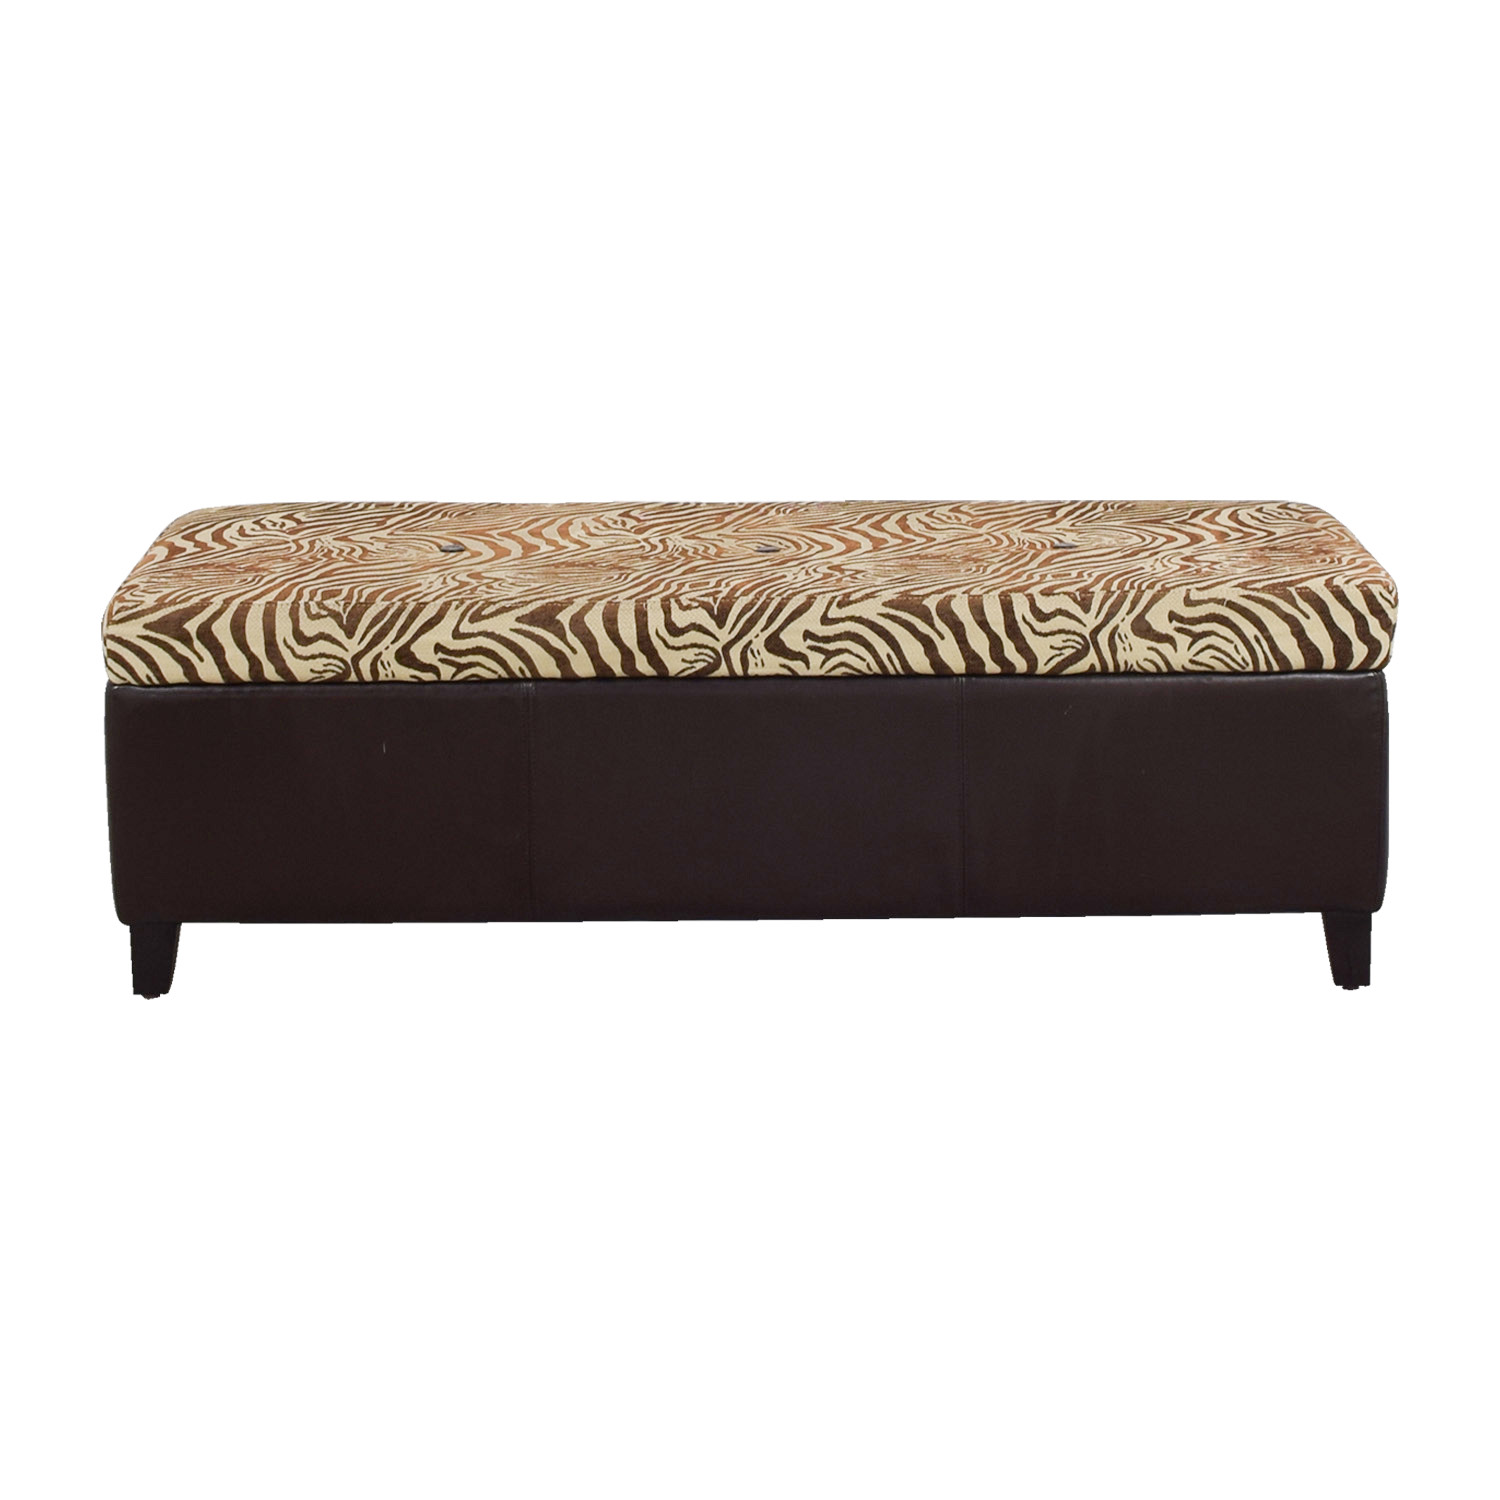 90 Off Pier 1 Pier 1 Imports Brown Zebra Storage Trunk